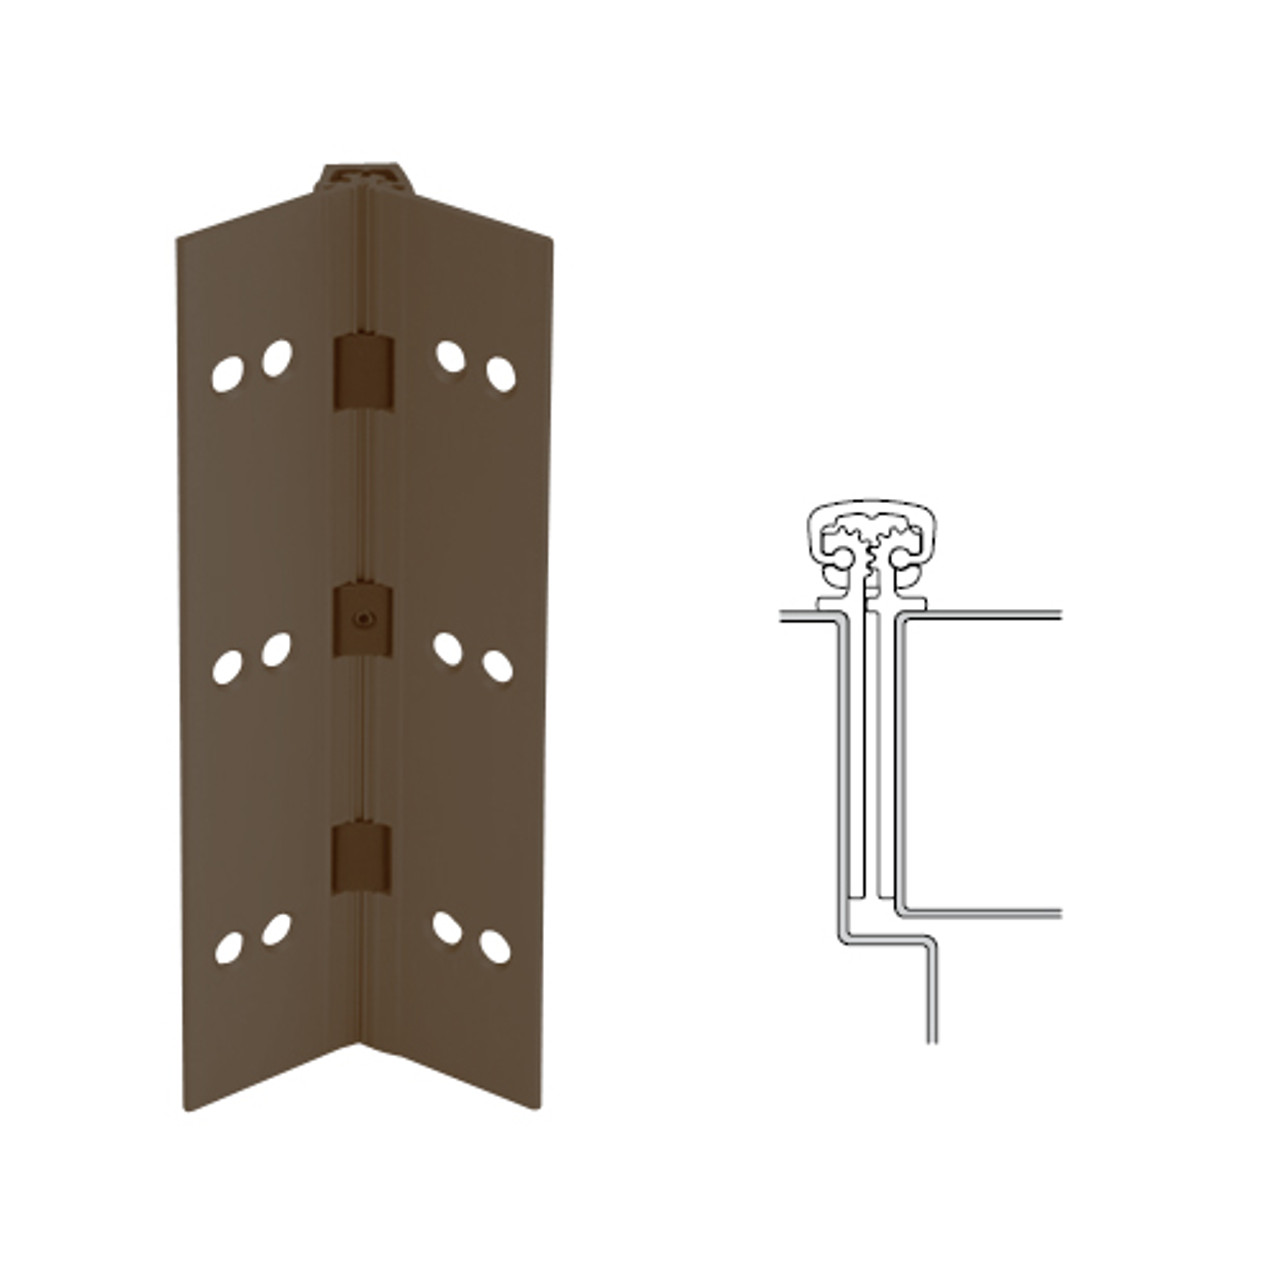 027XY-313AN-83-HT IVES Full Mortise Continuous Geared Hinges with Hospital Tip in Dark Bronze Anodized